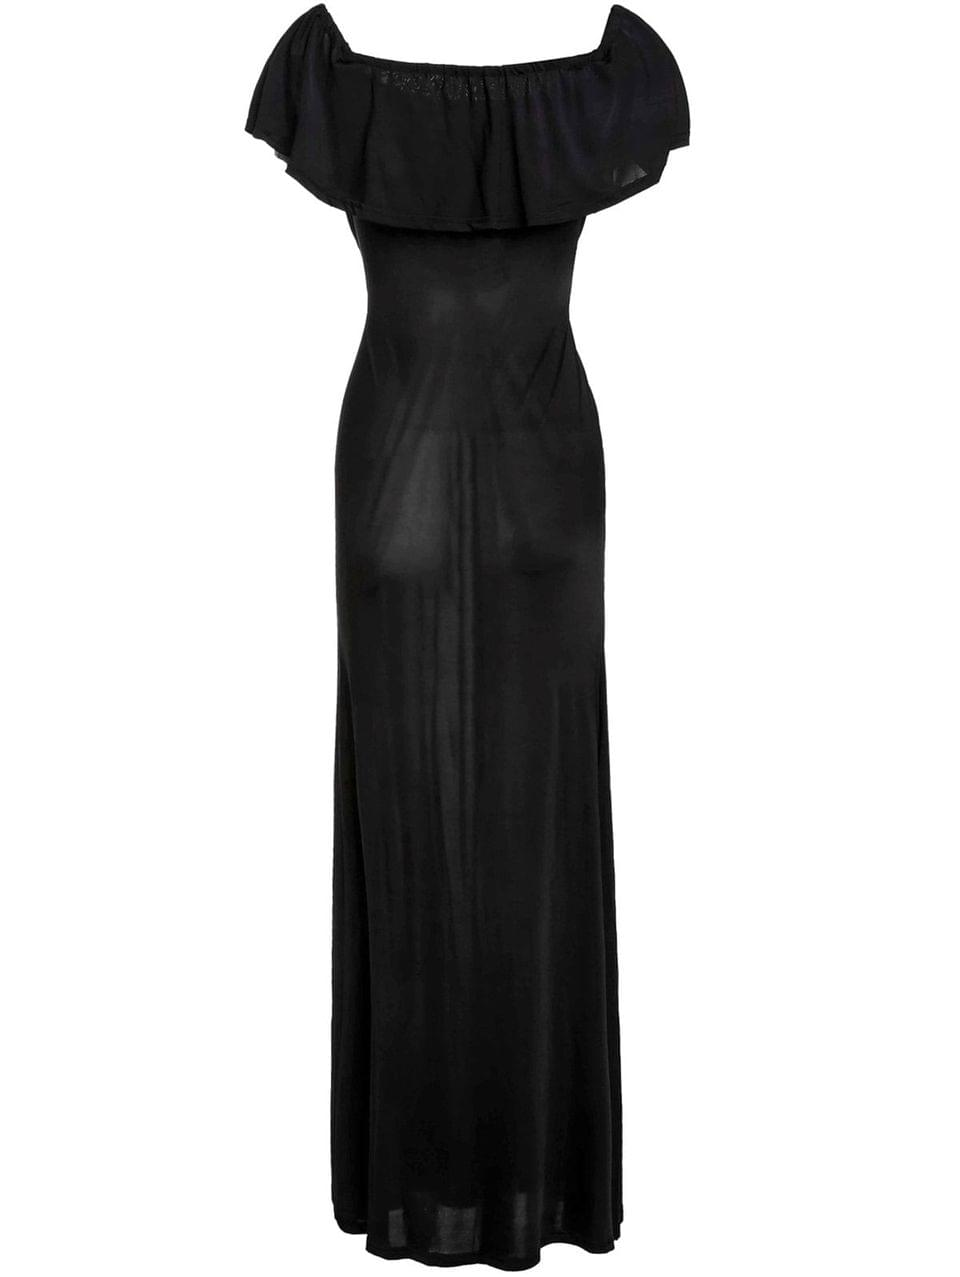 Women's Black Off The Shoulder Maxi Dress - Black L